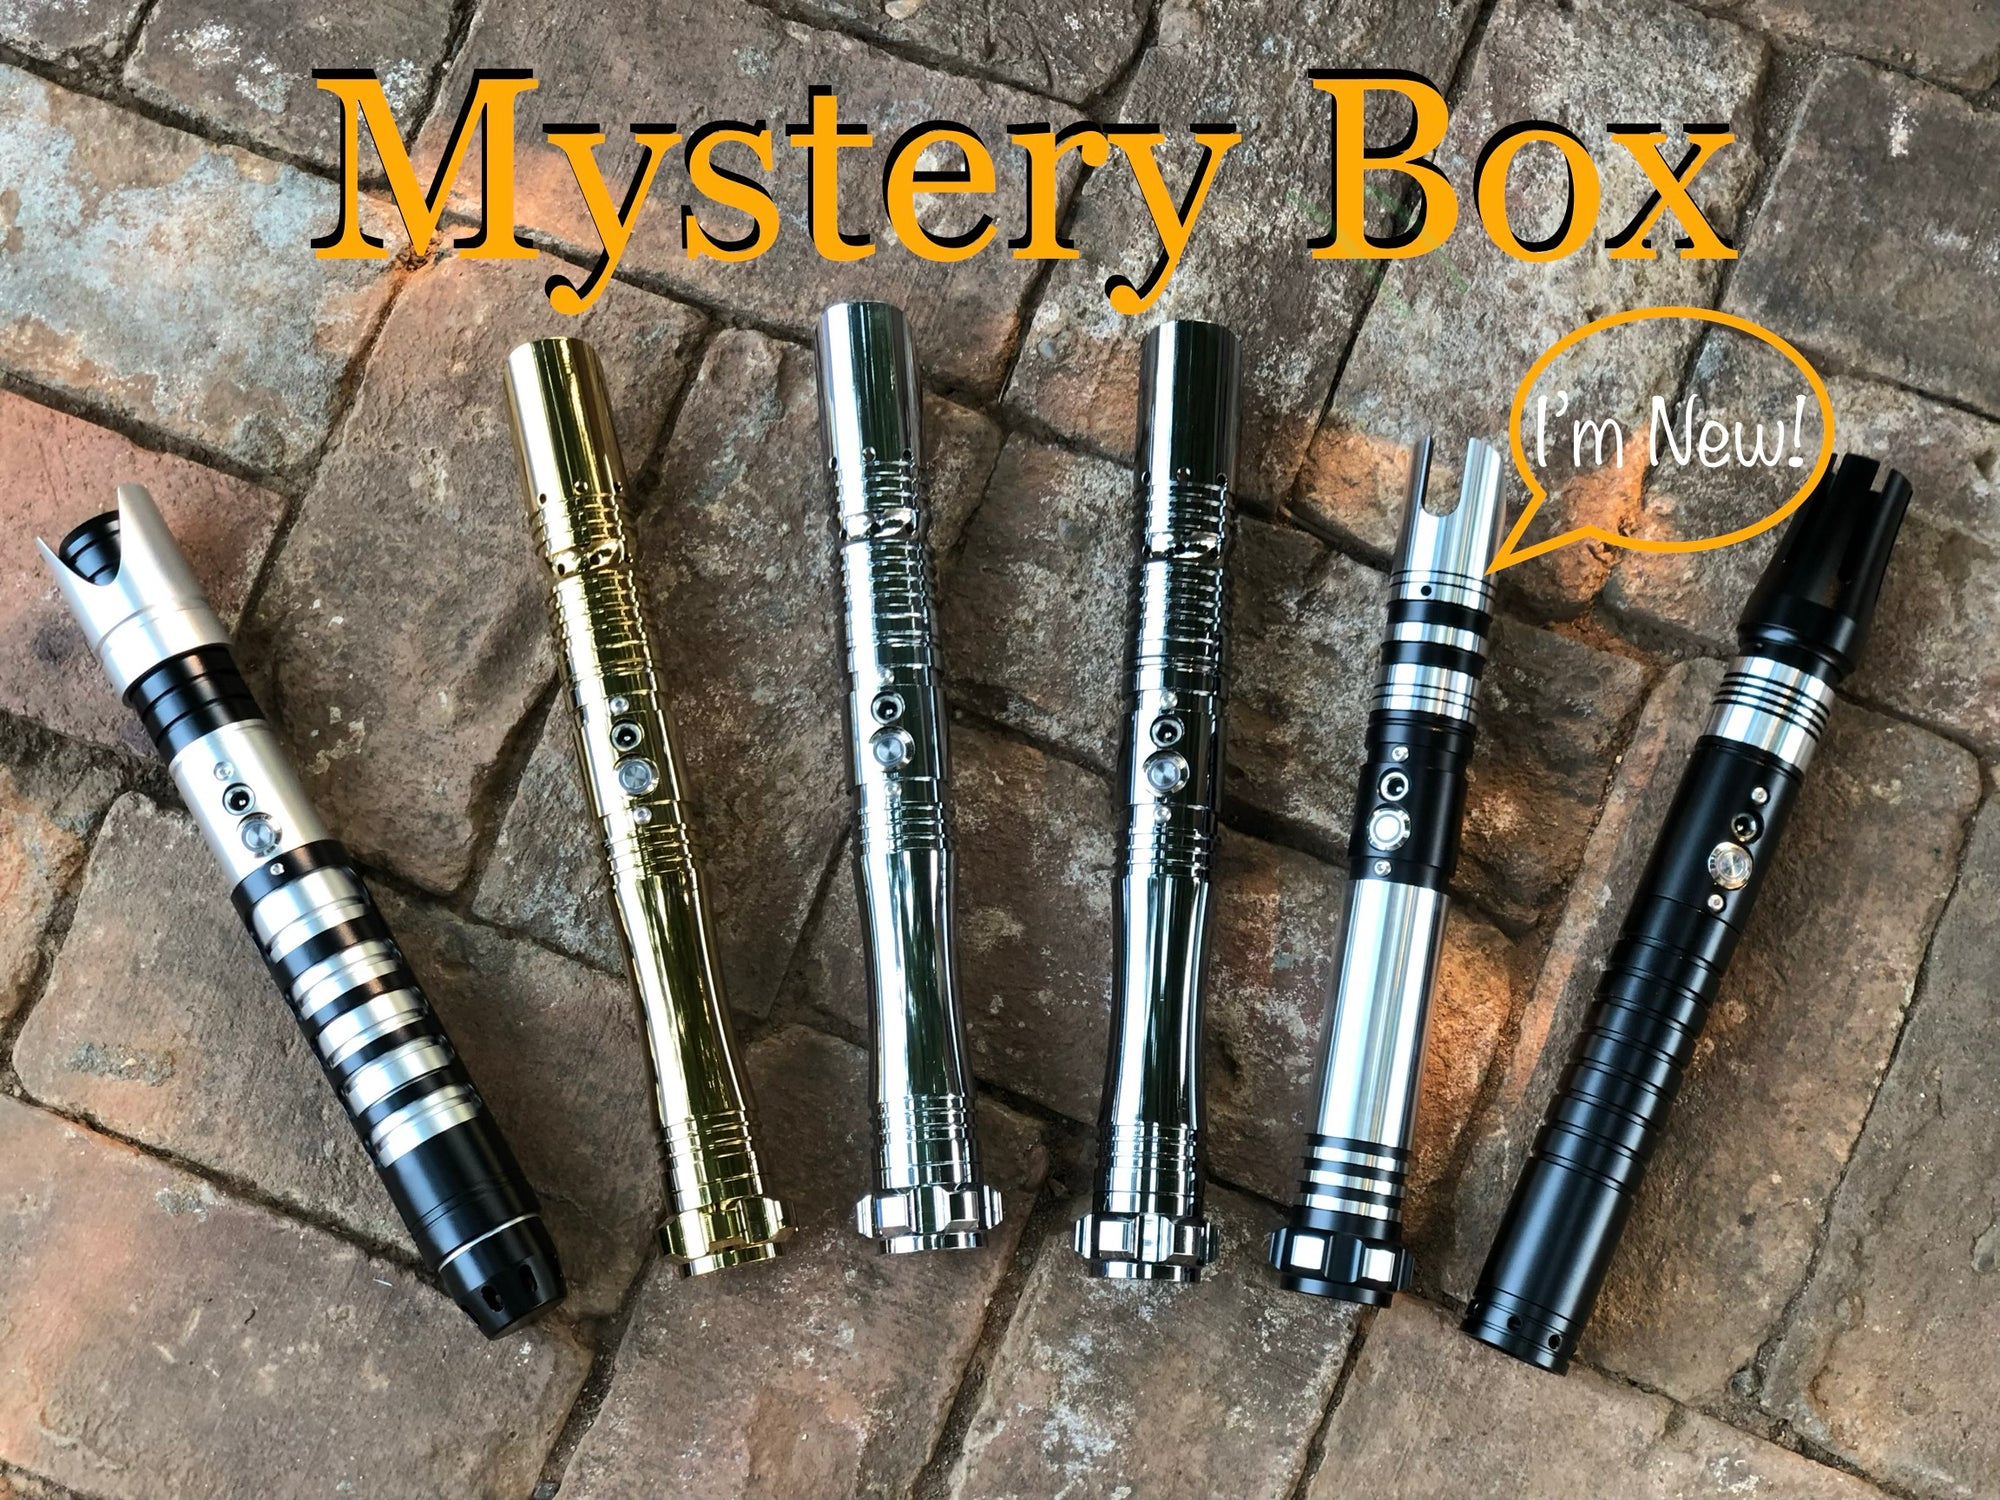 Mystery Boxes, back by popular demand for a limited time!